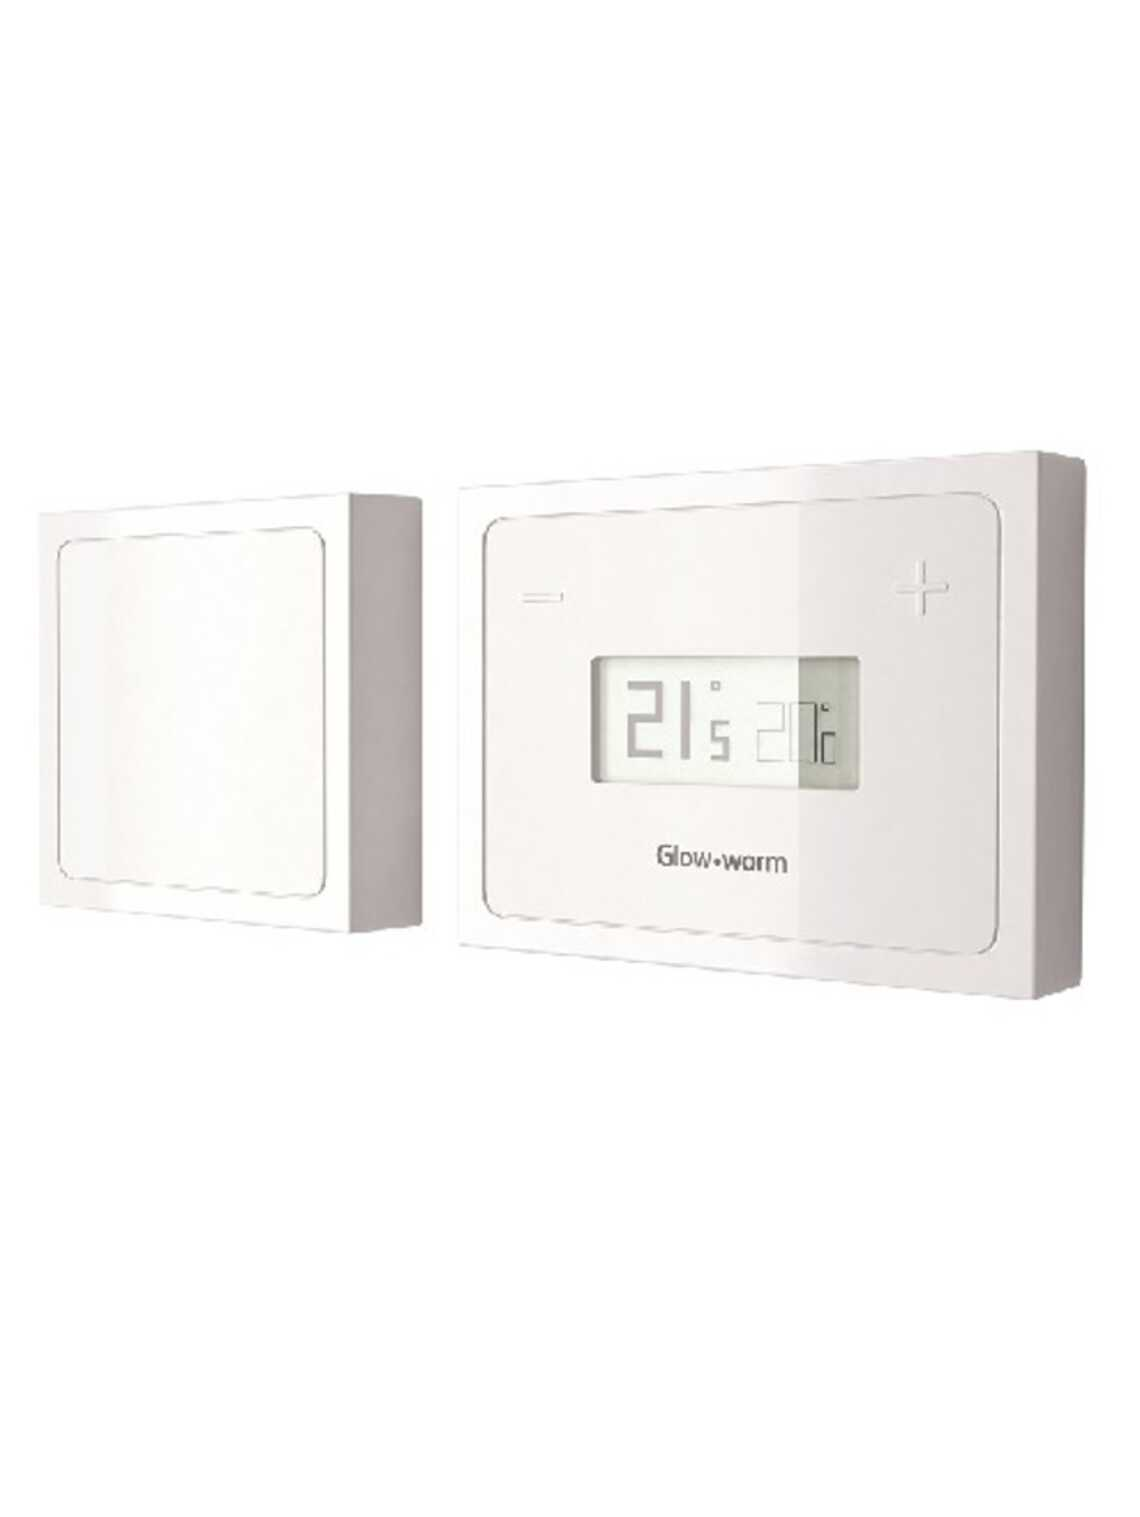 MiGo | Smart Thermostat | Homeowner | Glow-worm